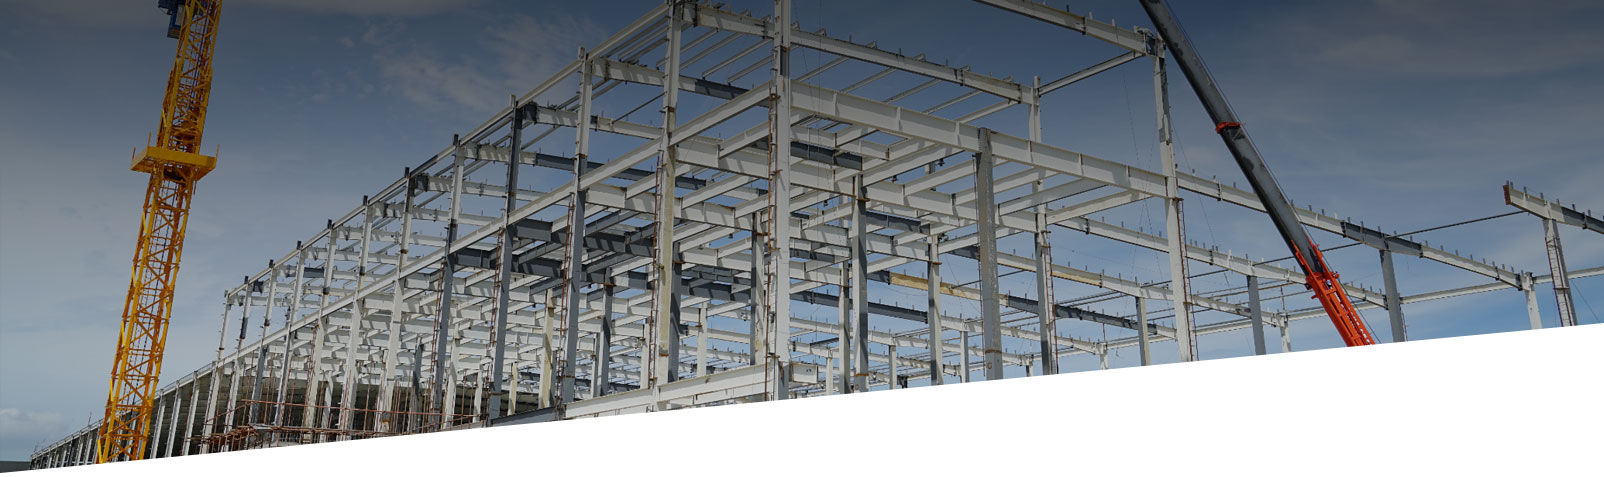 structural engineering steel frame